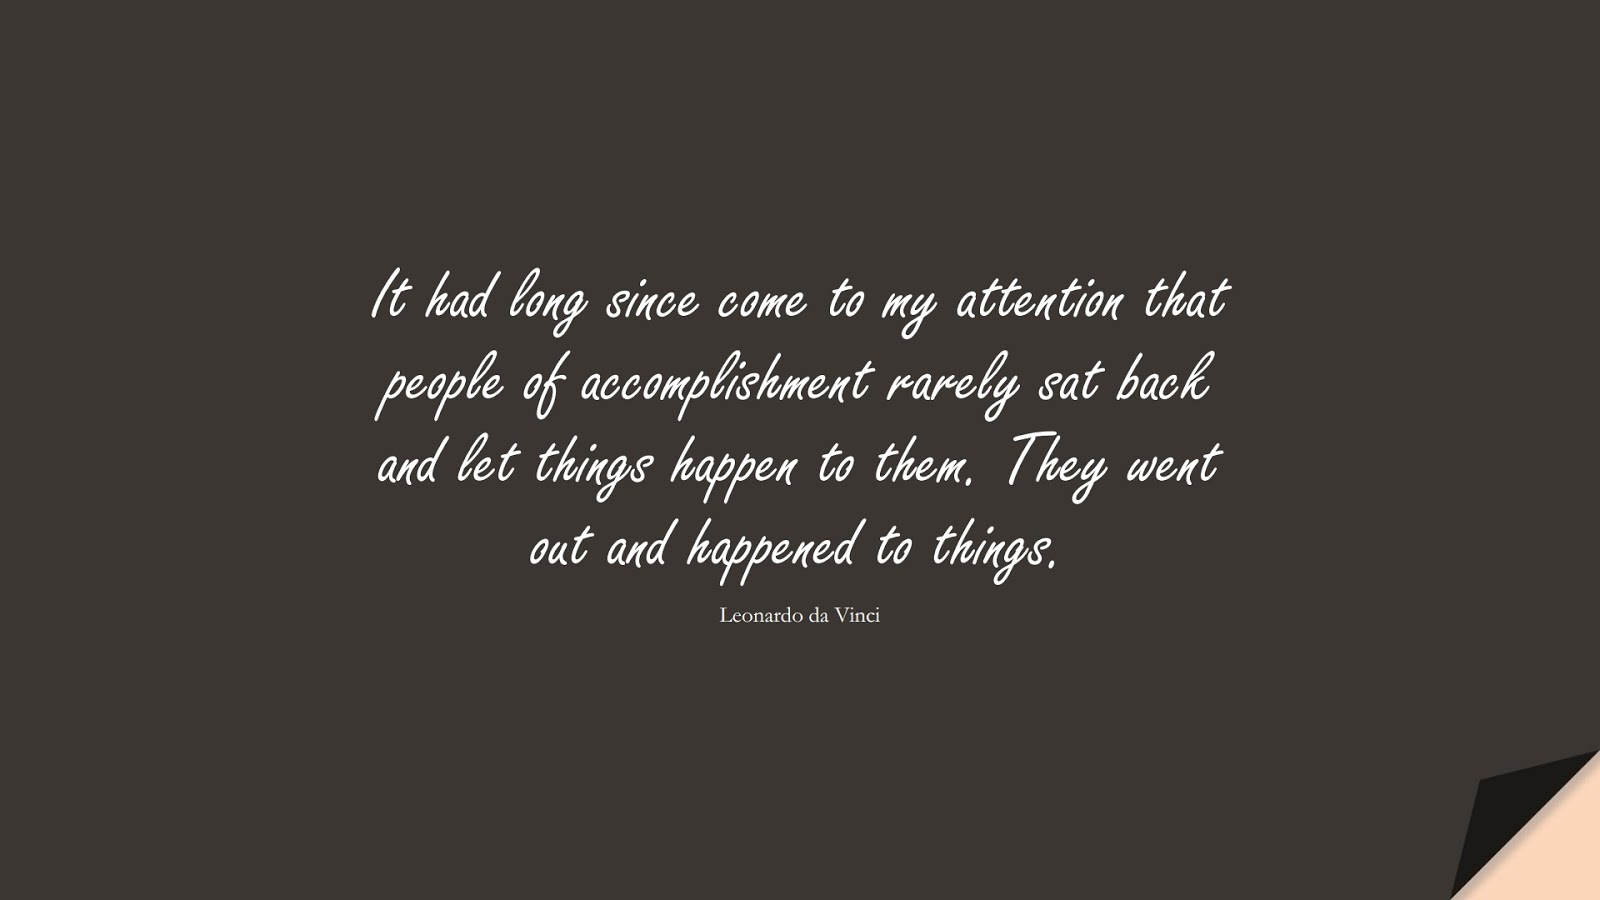 It had long since come to my attention that people of accomplishment rarely sat back and let things happen to them. They went out and happened to things. (Leonardo da Vinci);  #SuccessQuotes